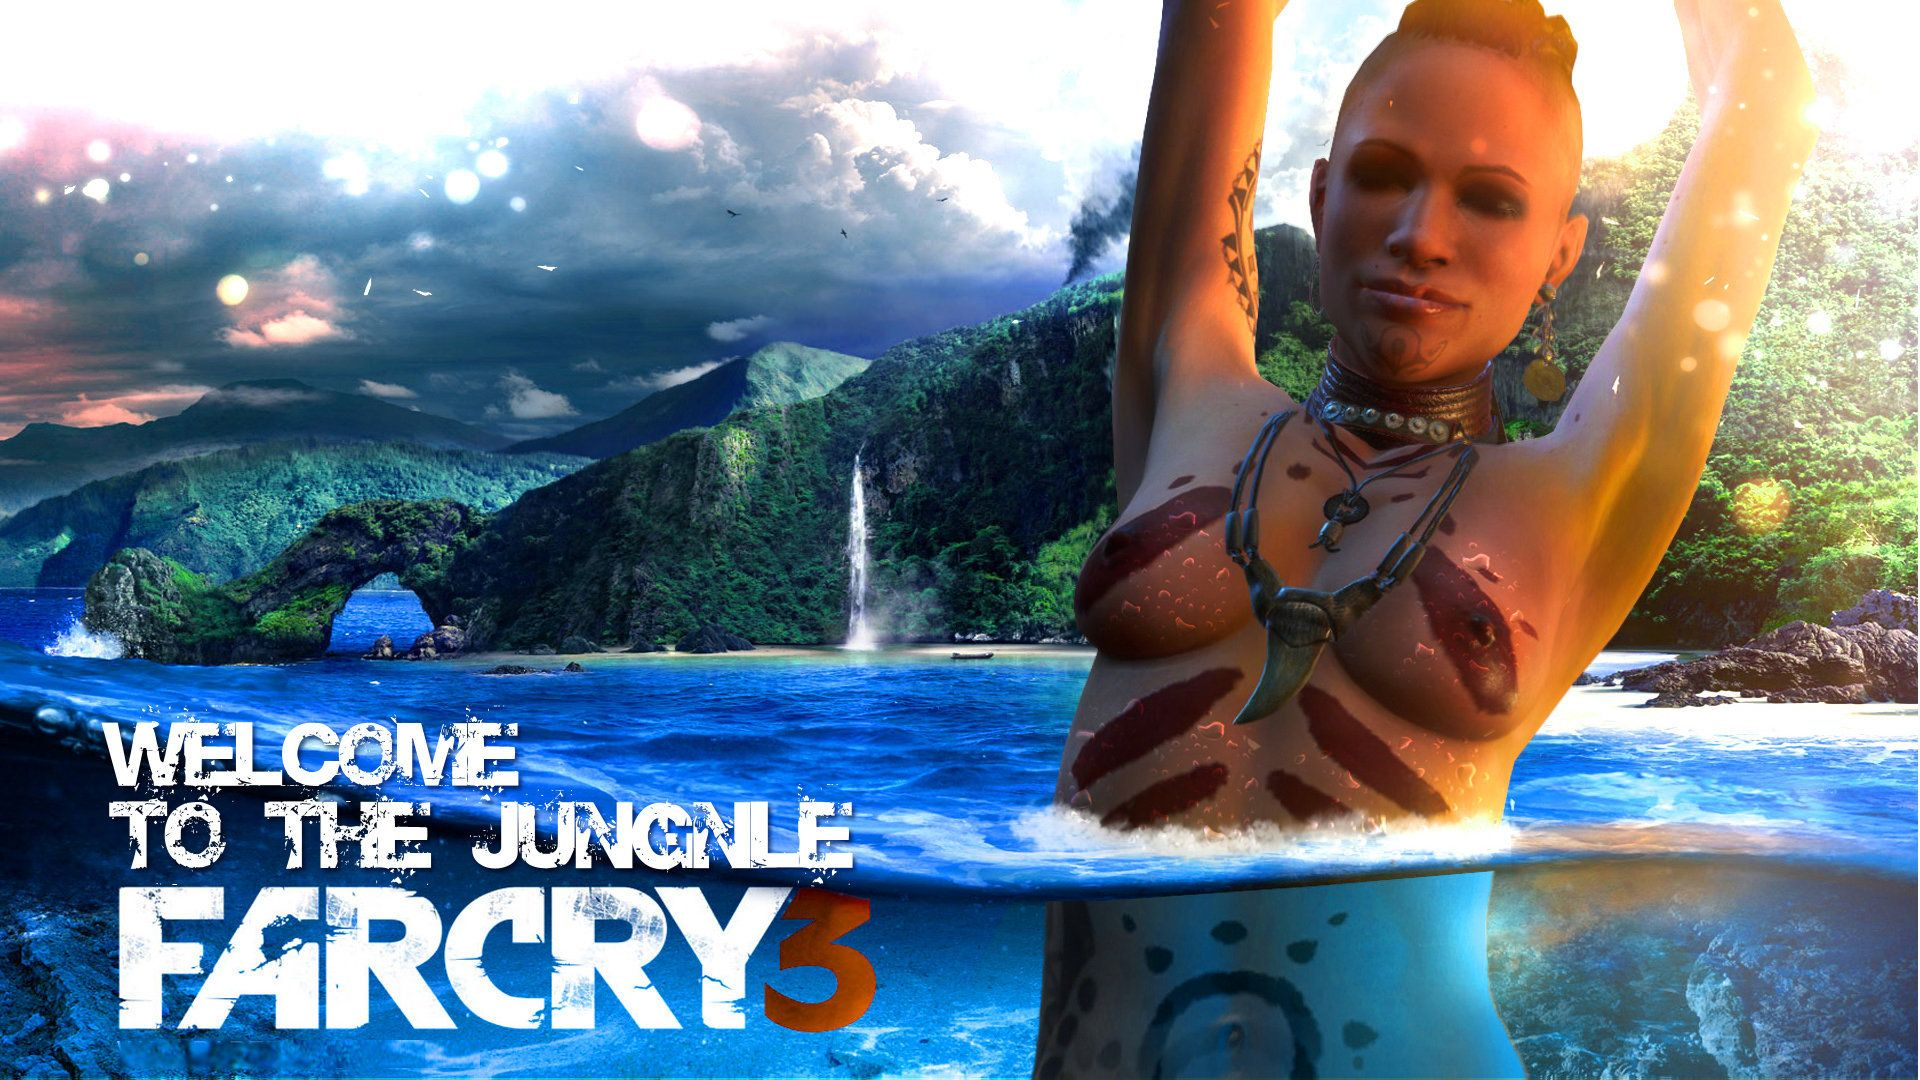 New Far Cry 3 Patch Includes Fan Requested Features Videojuegos